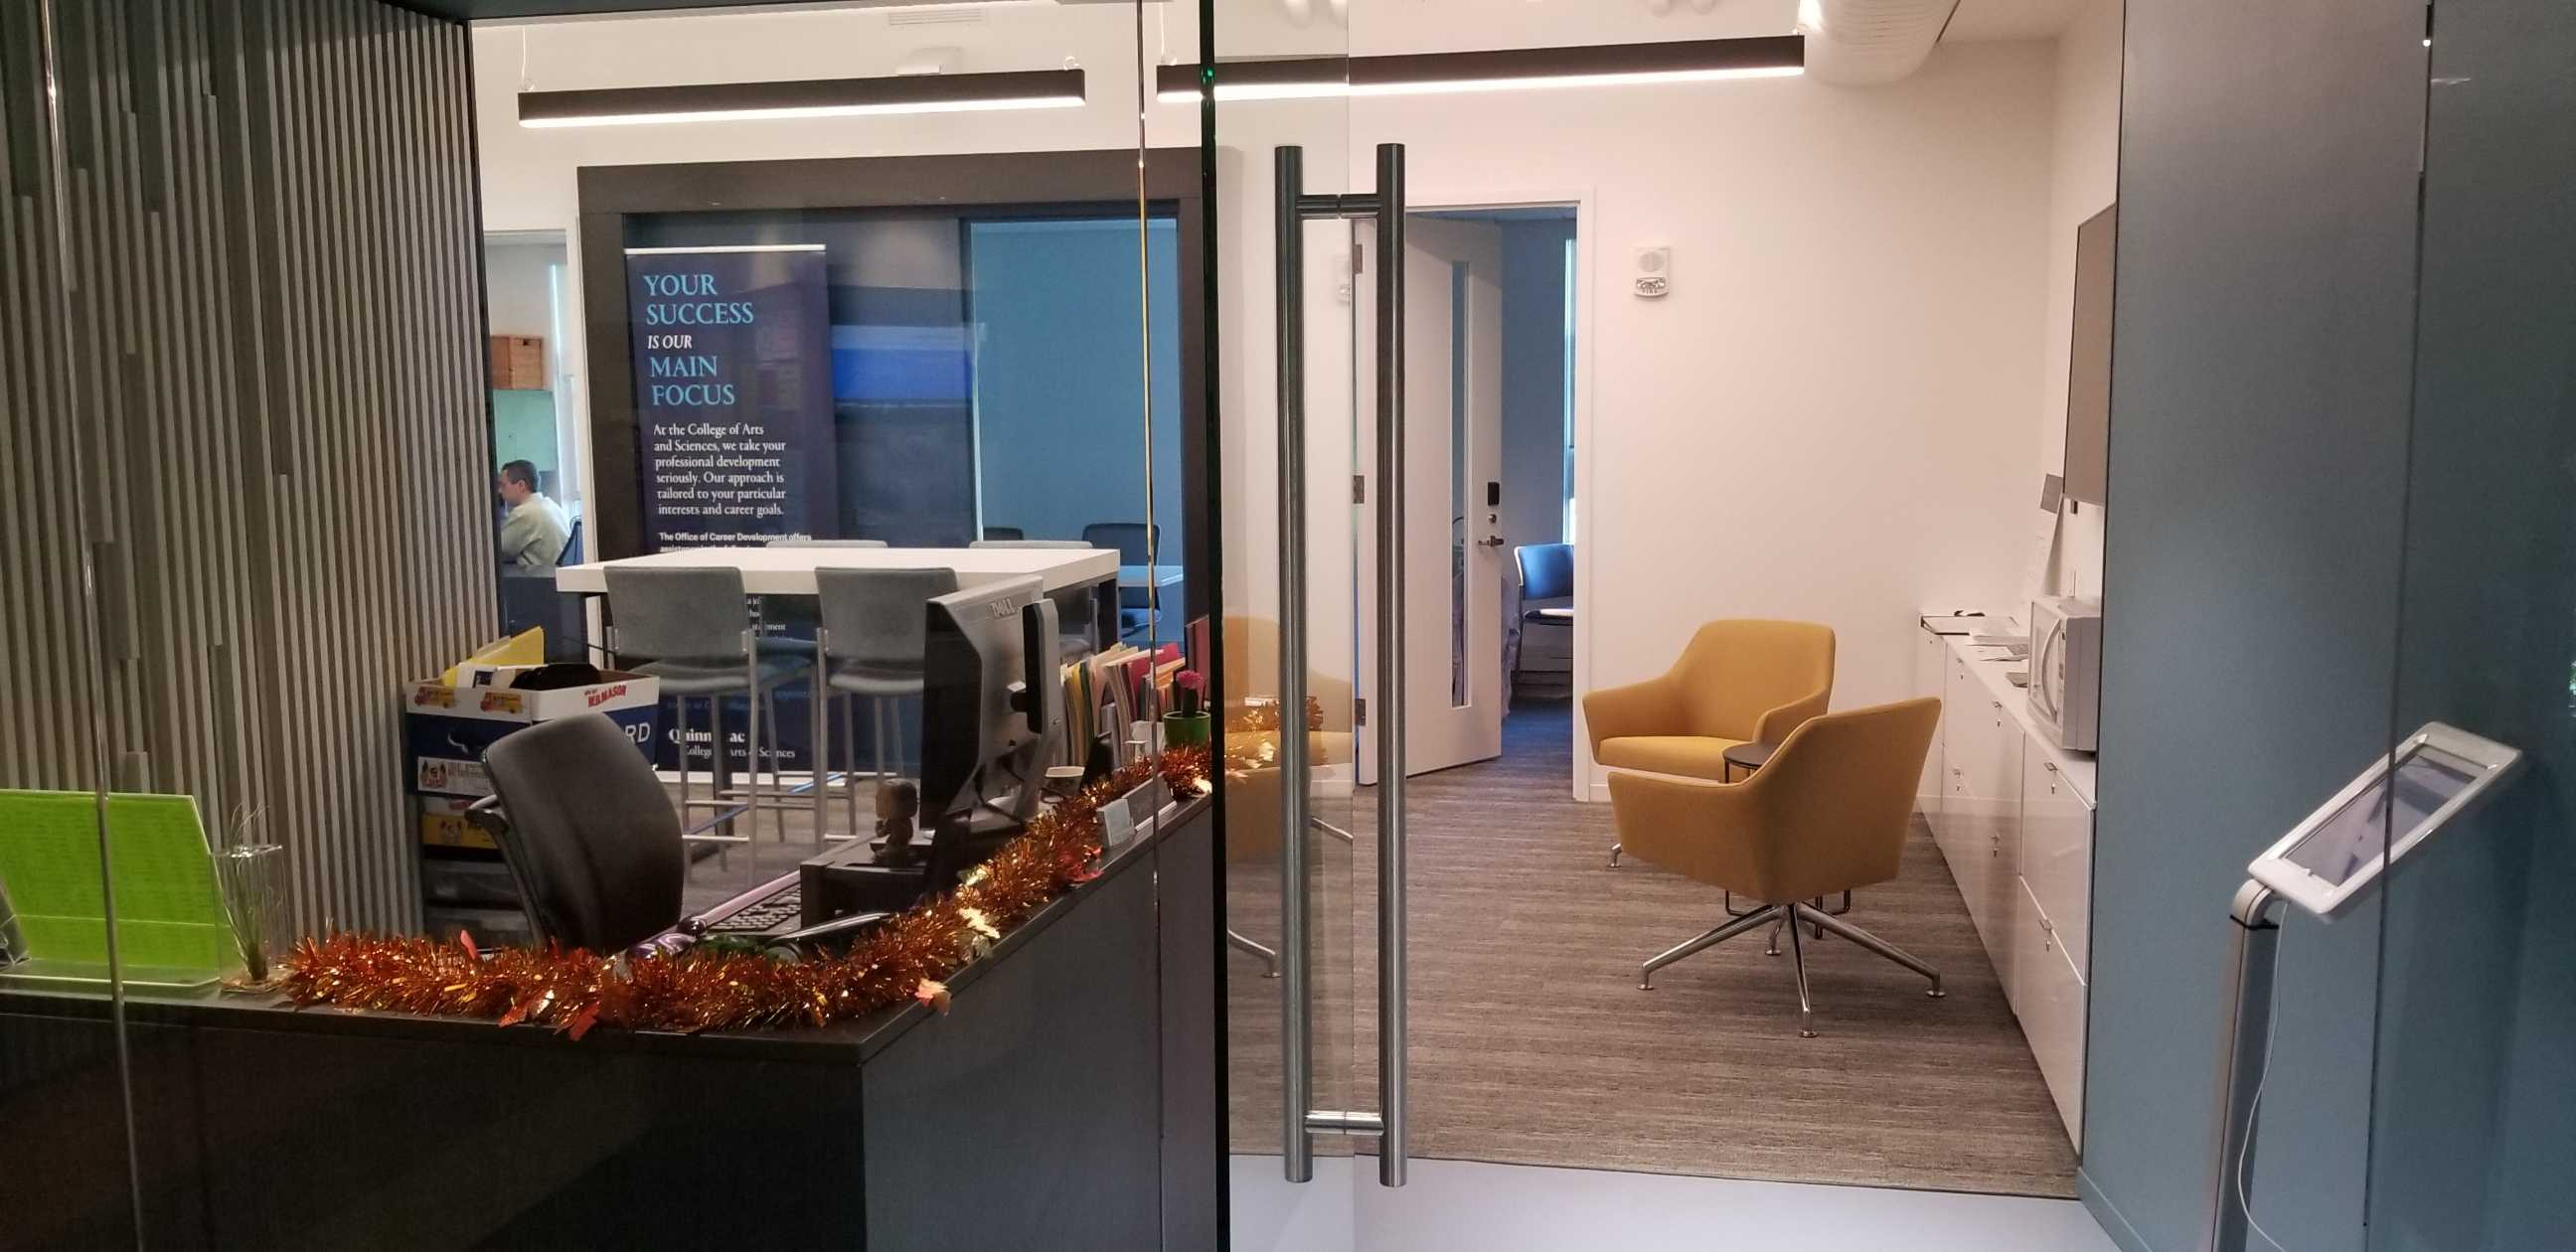 The new advising center in CAS is one of Smart's most recent accomplishments.